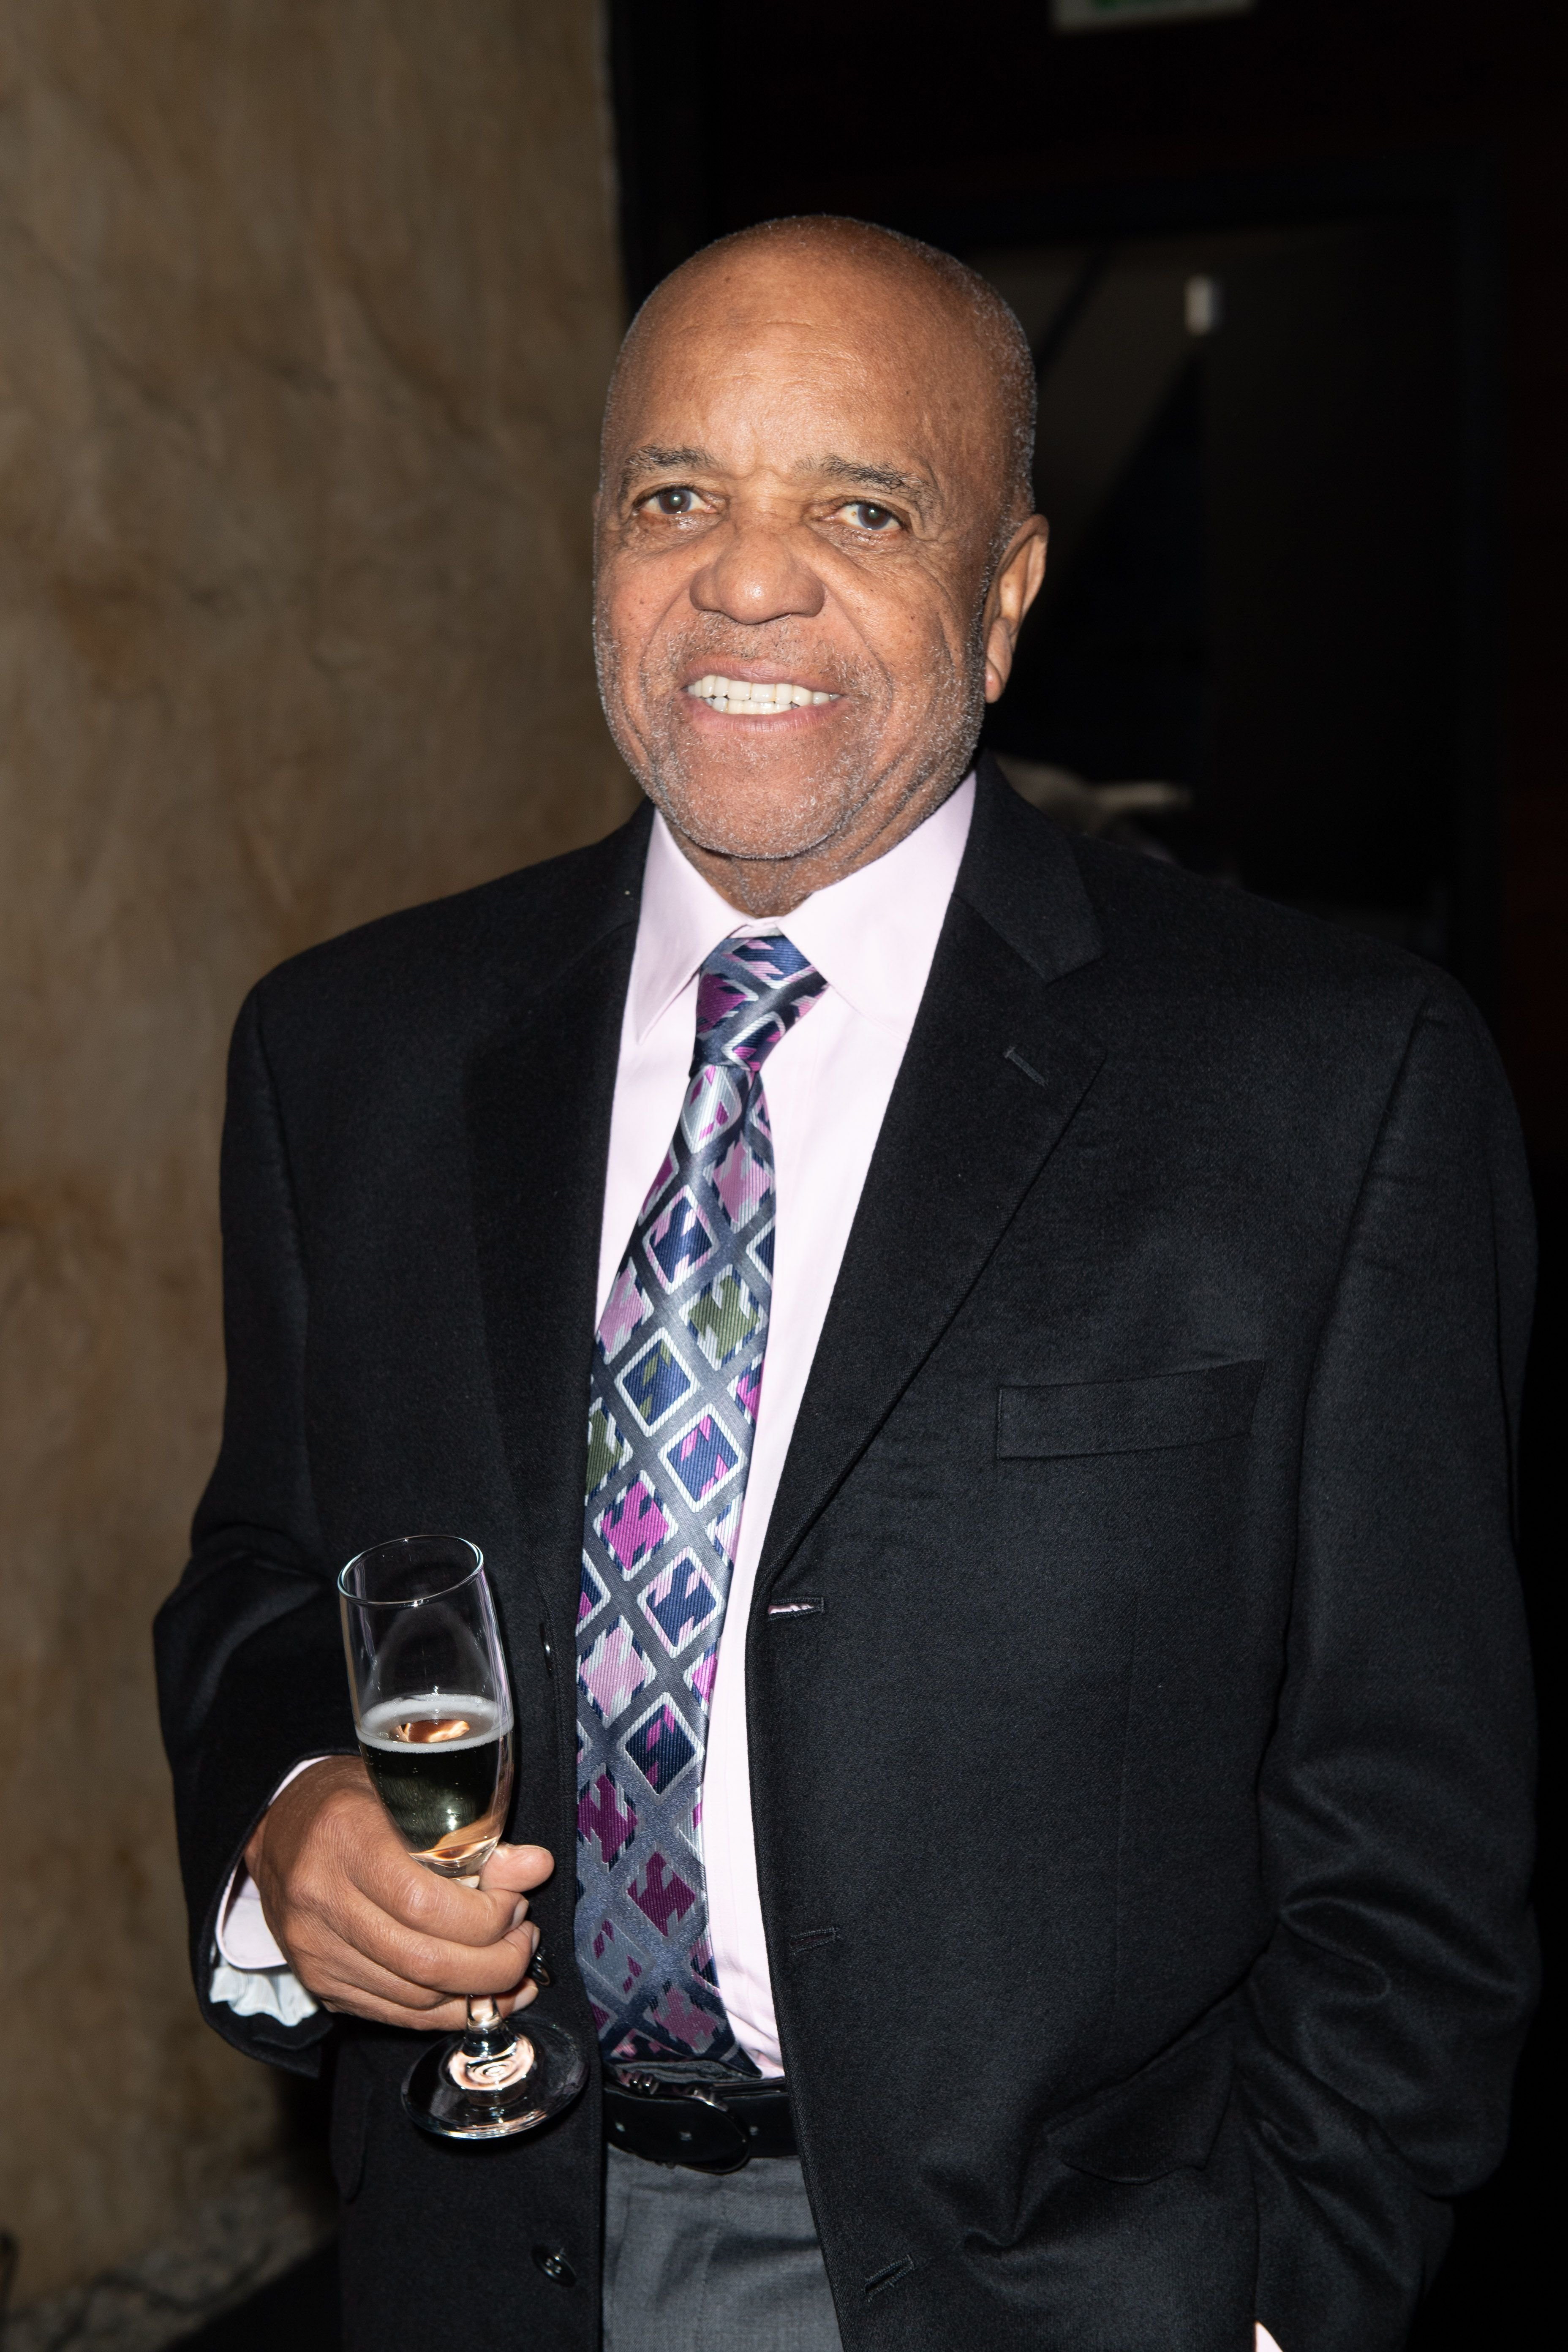 Berry Gordy during the Sony/ATV ASCAP and BMI Party at Katana on May 16, 2019 in West Hollywood, California. | Source: Getty Images